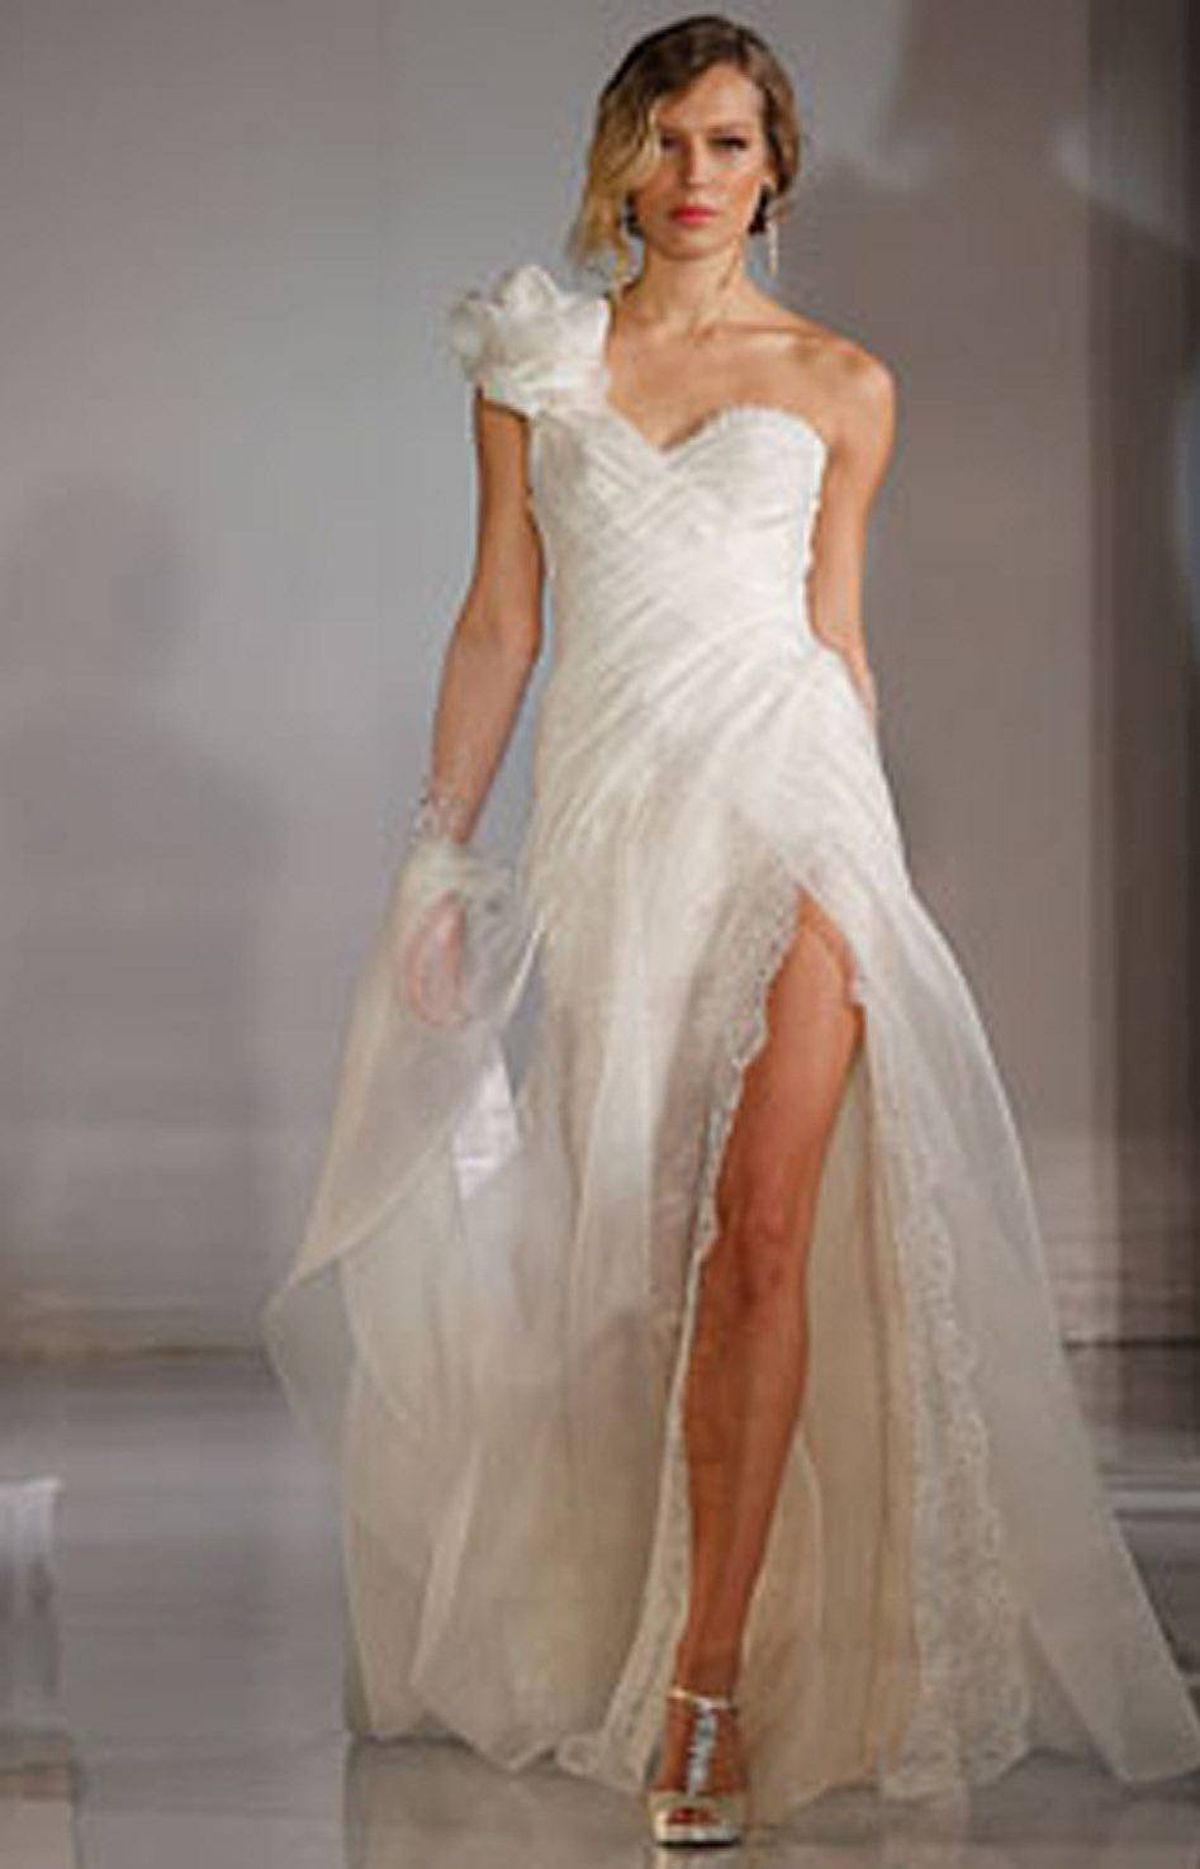 """SELLING SHORT Got great gams? This is the year to show them off, as shorter wedding gowns are also proving popular. Toronto designer Belter, who makes lacy minis, cites another reason for the new cropped hemlines: """"[They] allow brides to flaunt their killer shoes."""""""